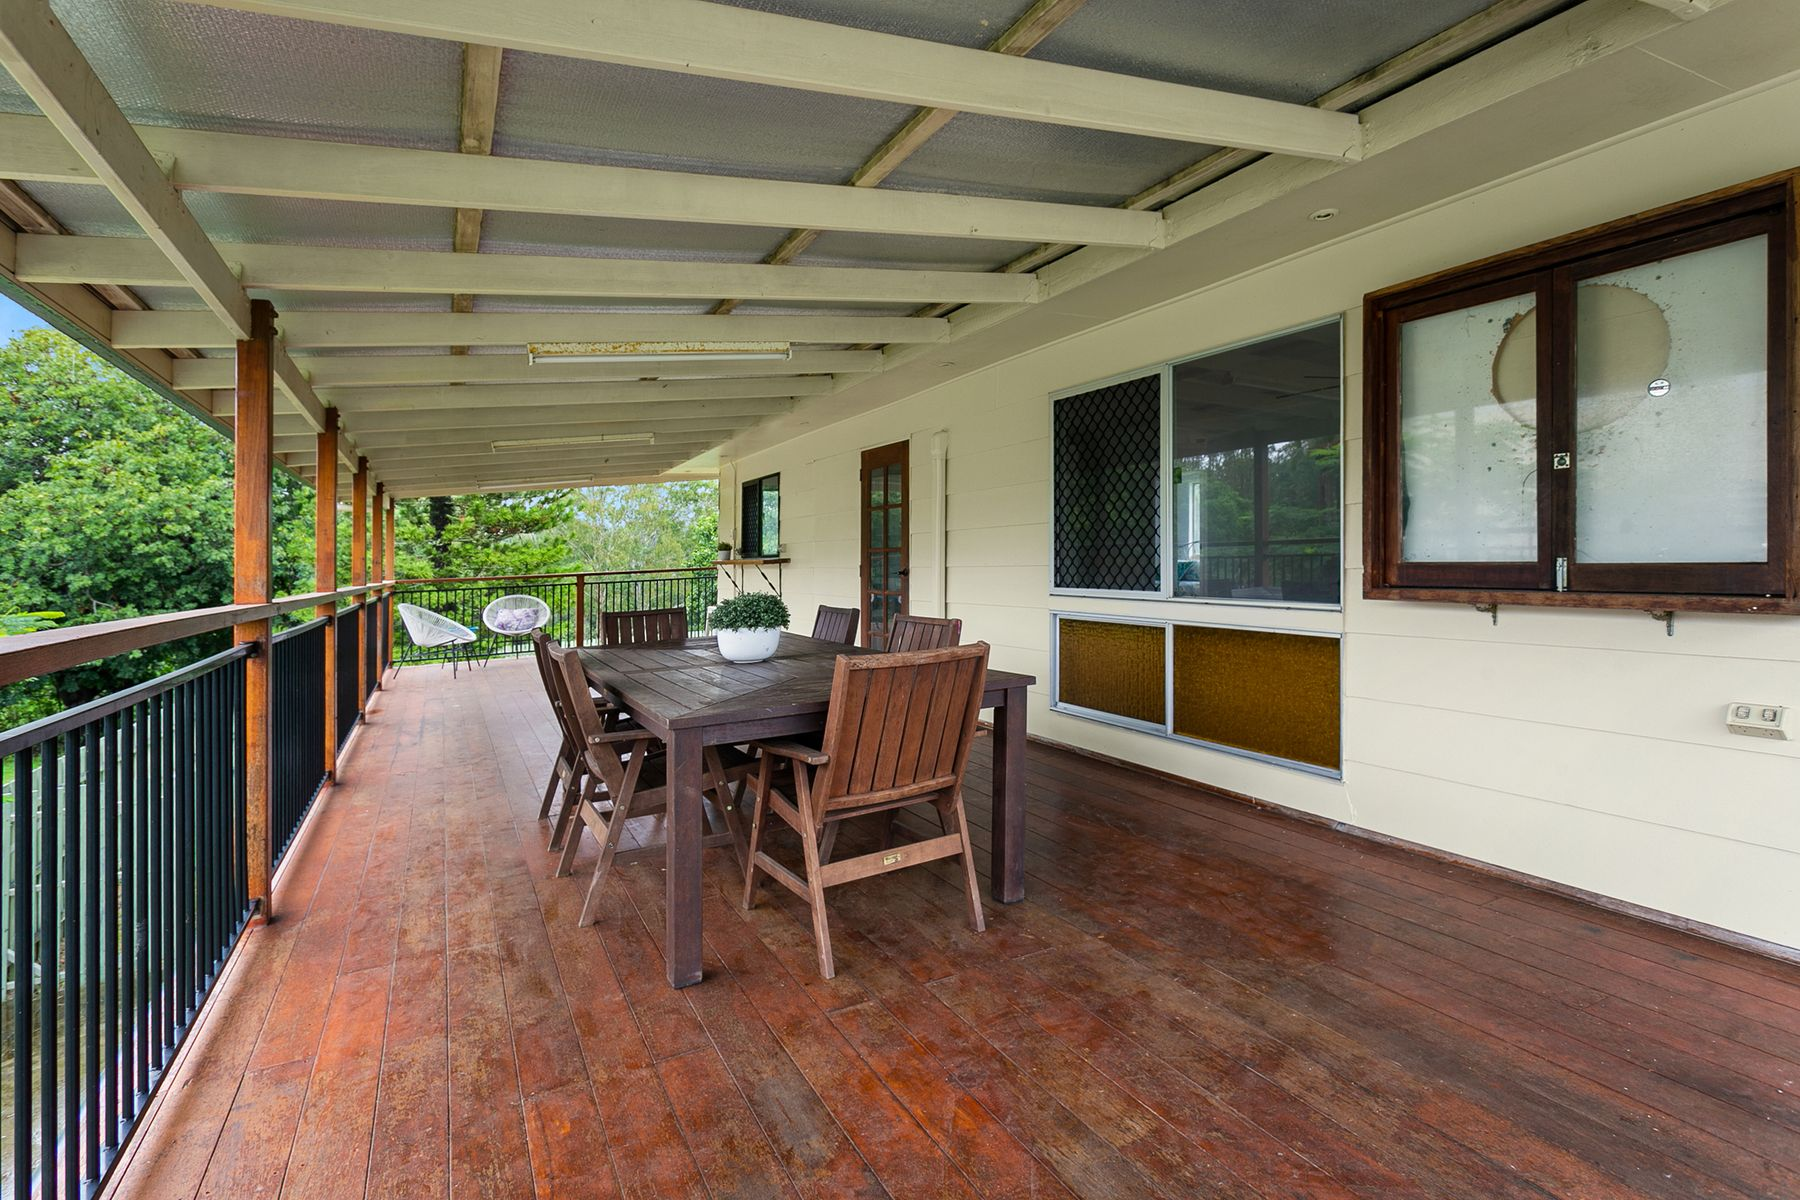 162 Woodend Road, Woodend, QLD 4305